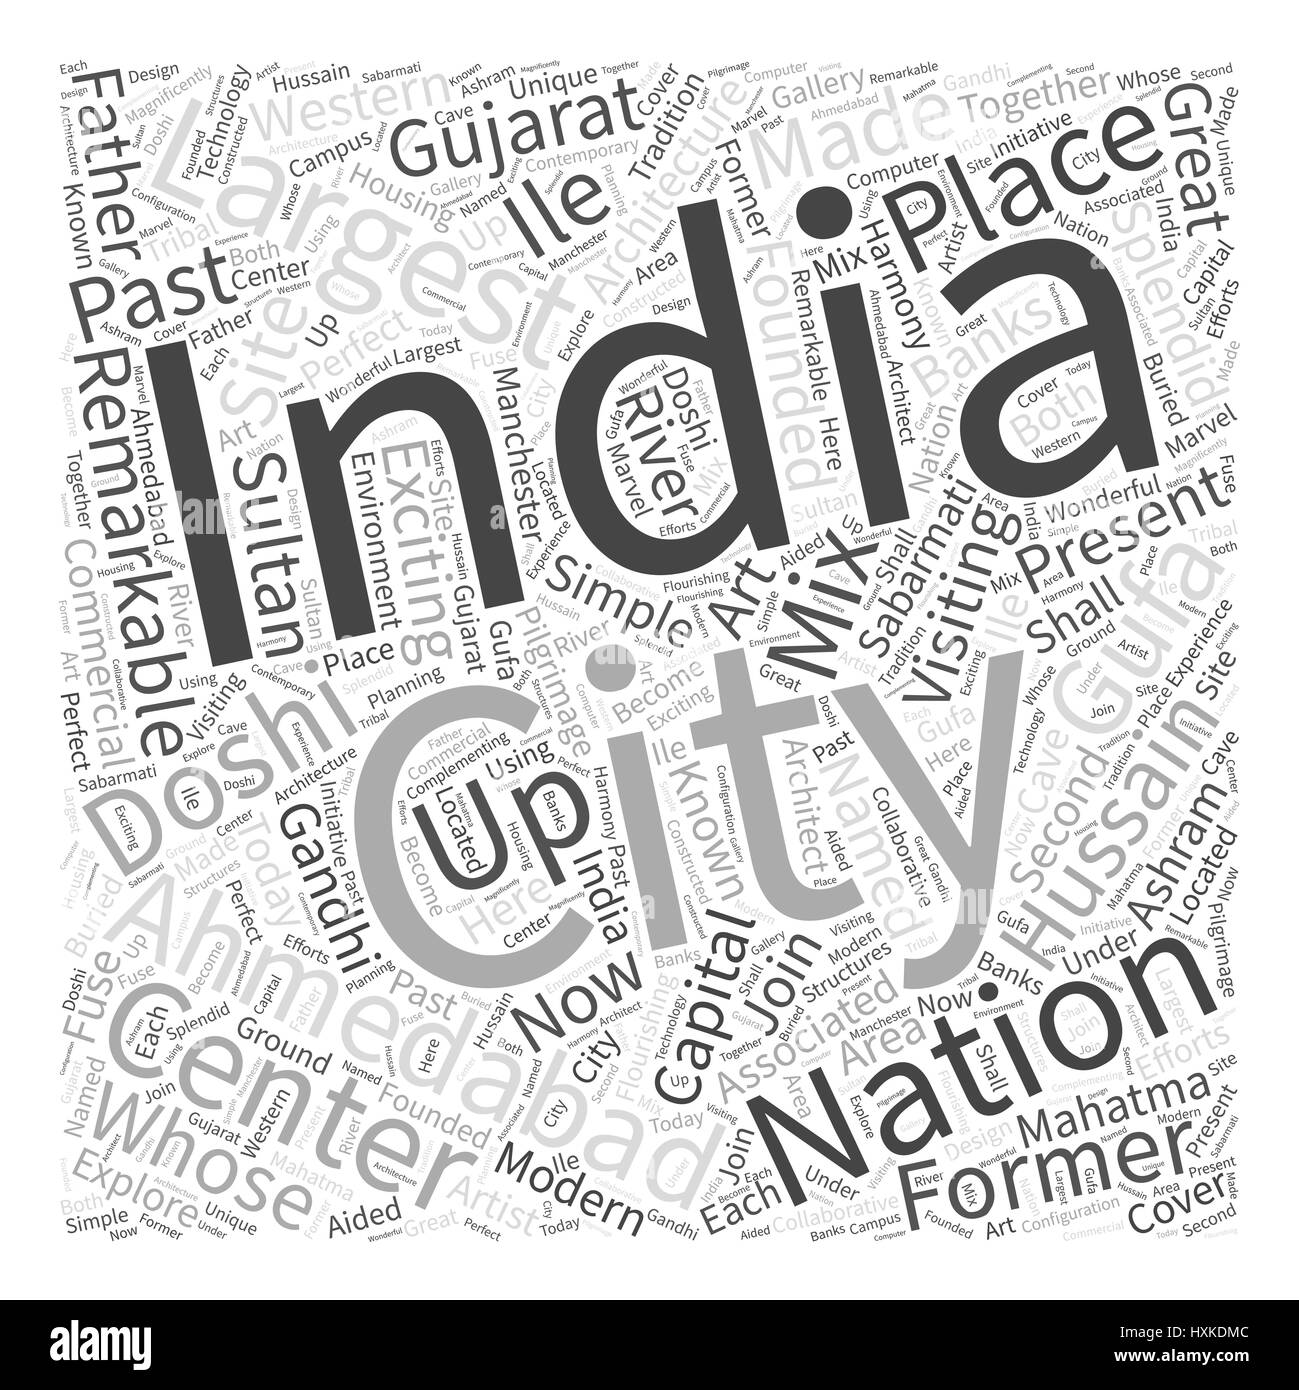 Visiting Ahmedabad India Word Cloud Concept - Stock Vector